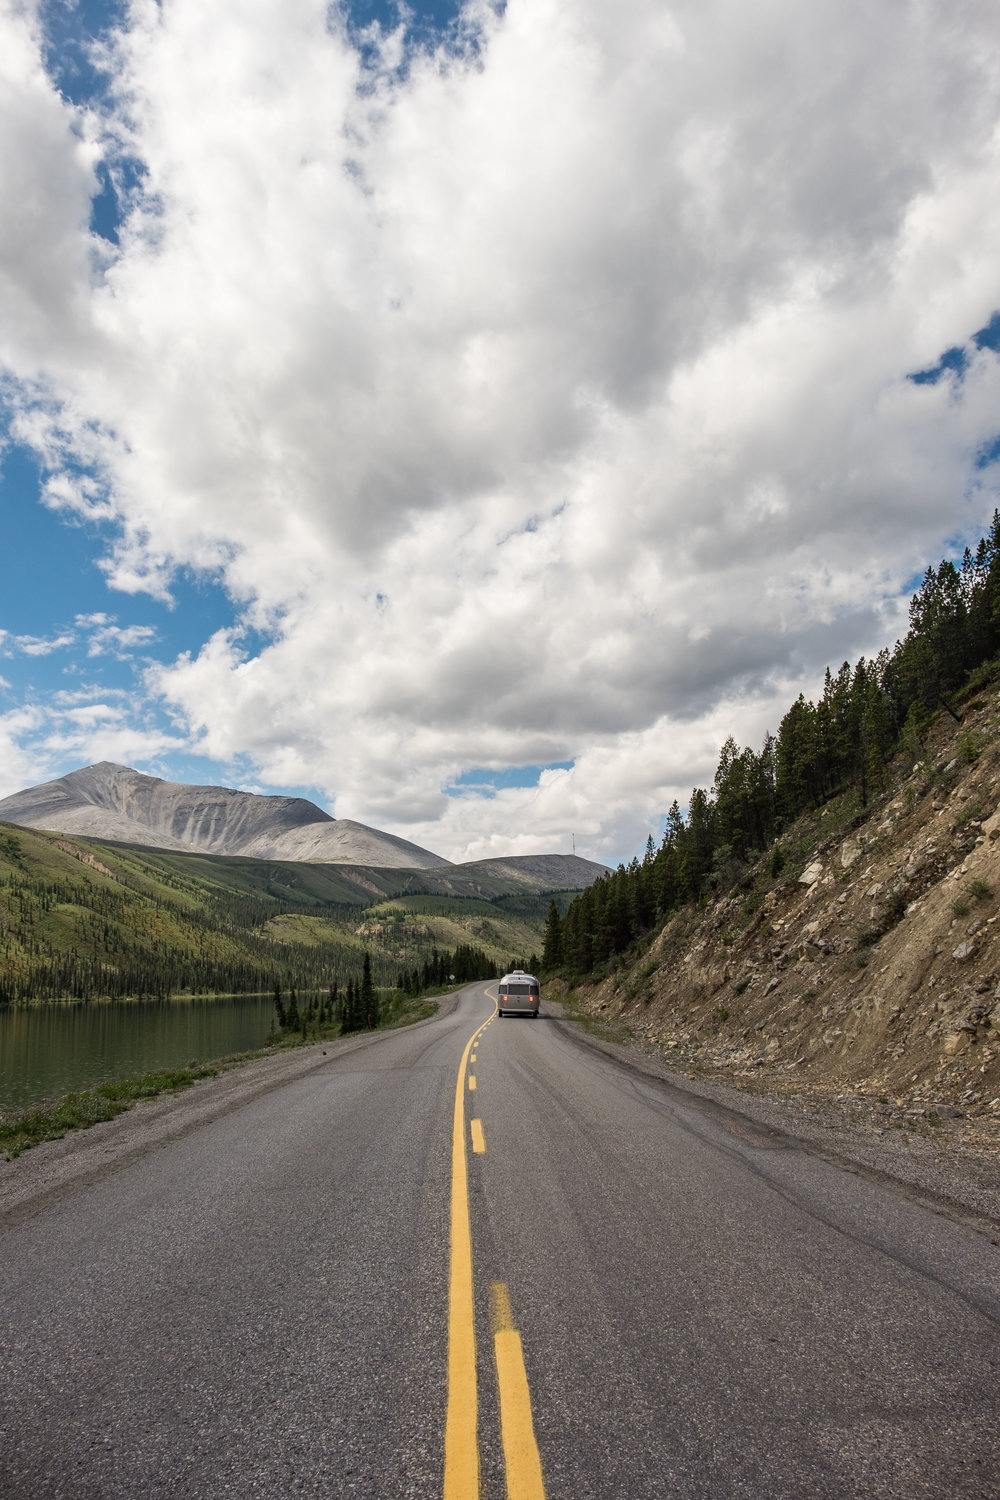 The Alaska (Alcan) Highway